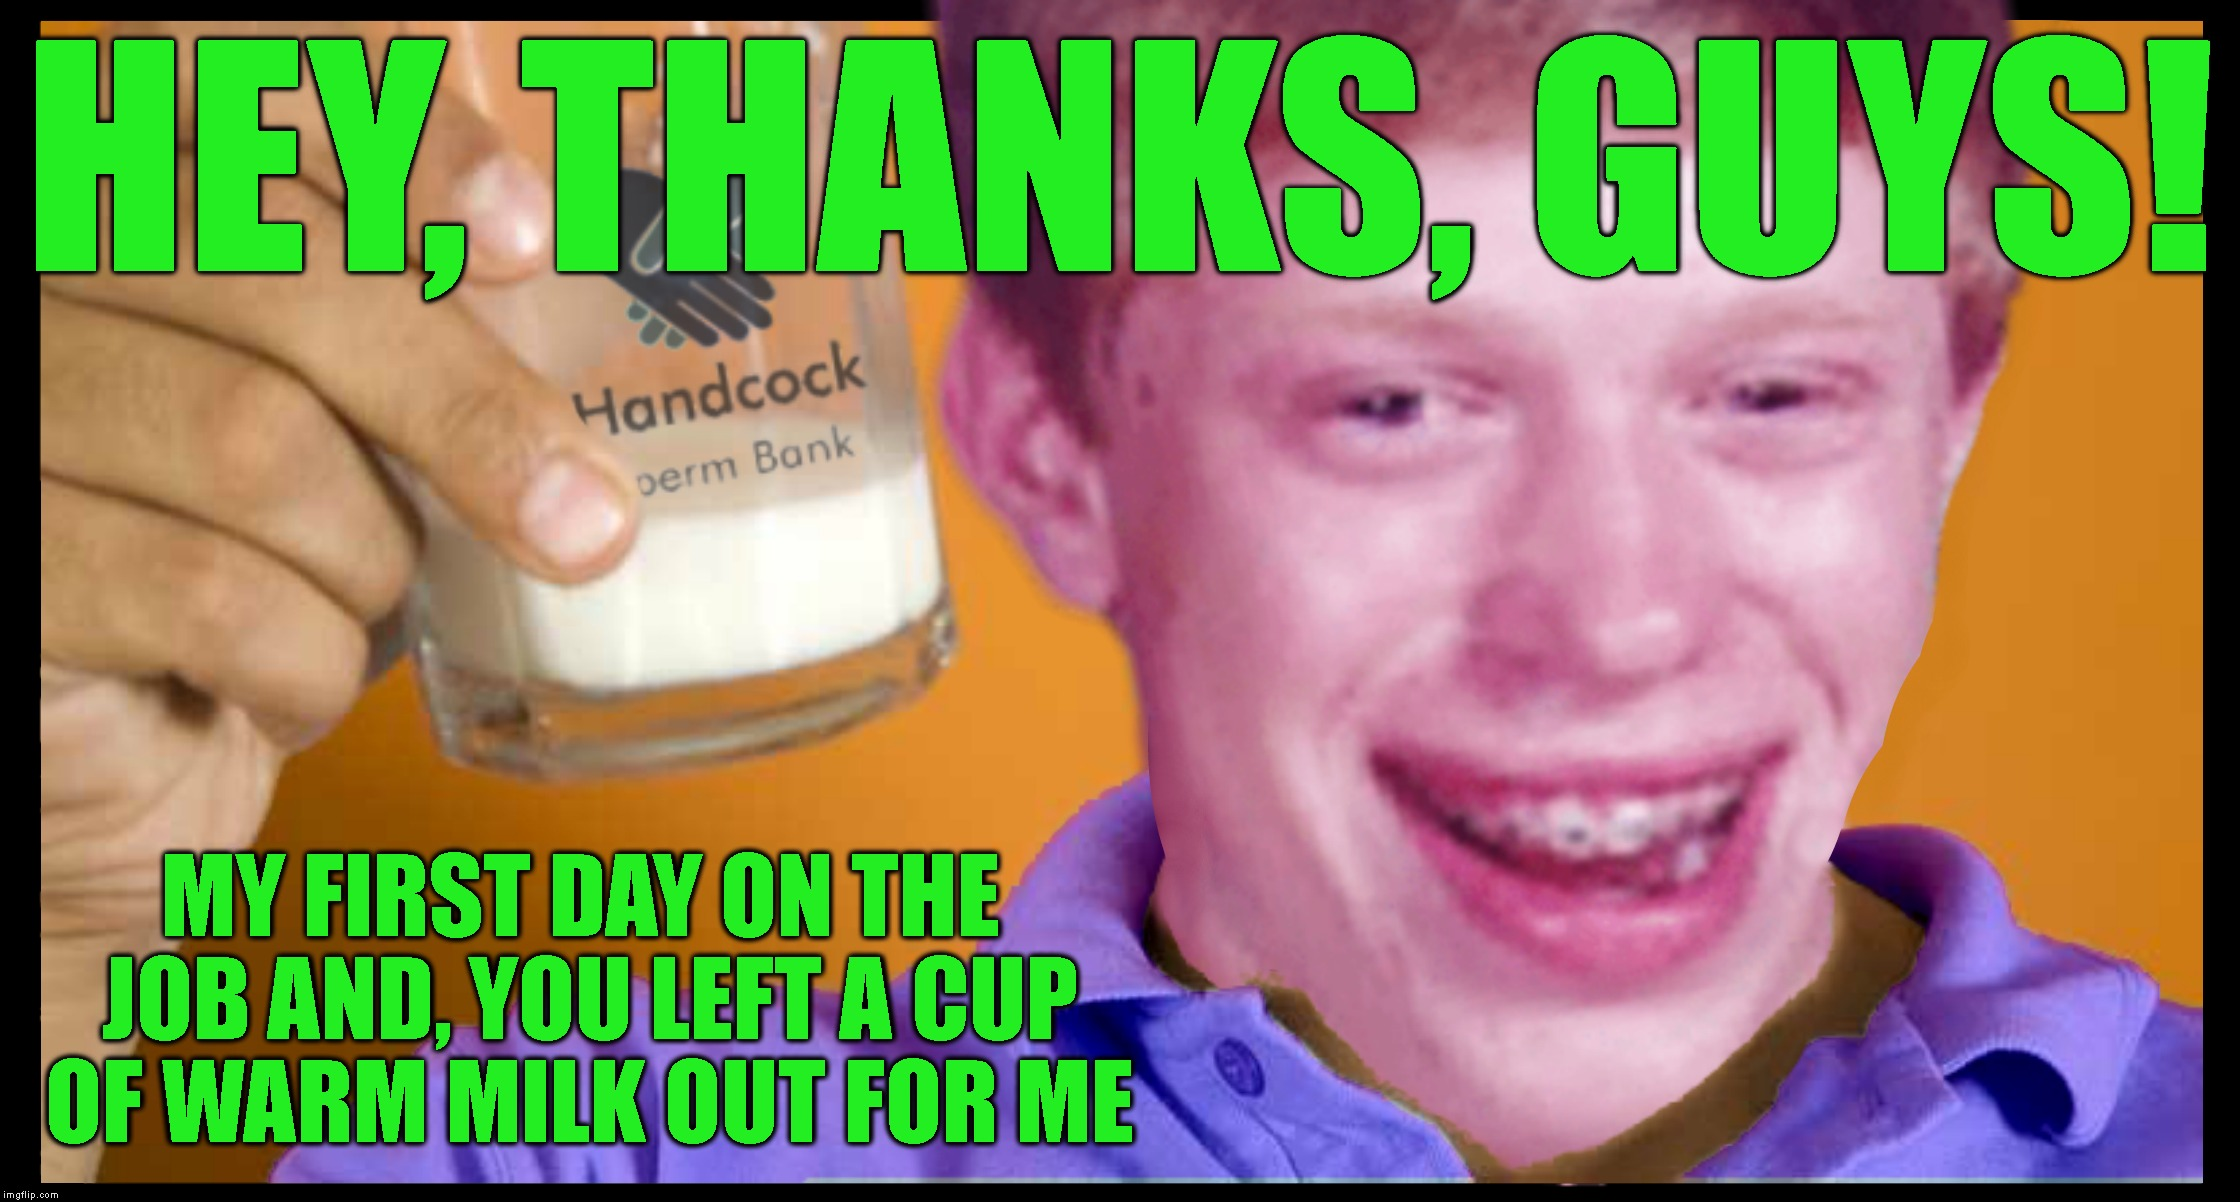 Does The Body Good | HEY, THANKS, GUYS! MY FIRST DAY ON THE JOB AND, YOU LEFT A CUP OF WARM MILK OUT FOR ME | image tagged in bad luck brian,osha,co-workers,milk,work,working | made w/ Imgflip meme maker